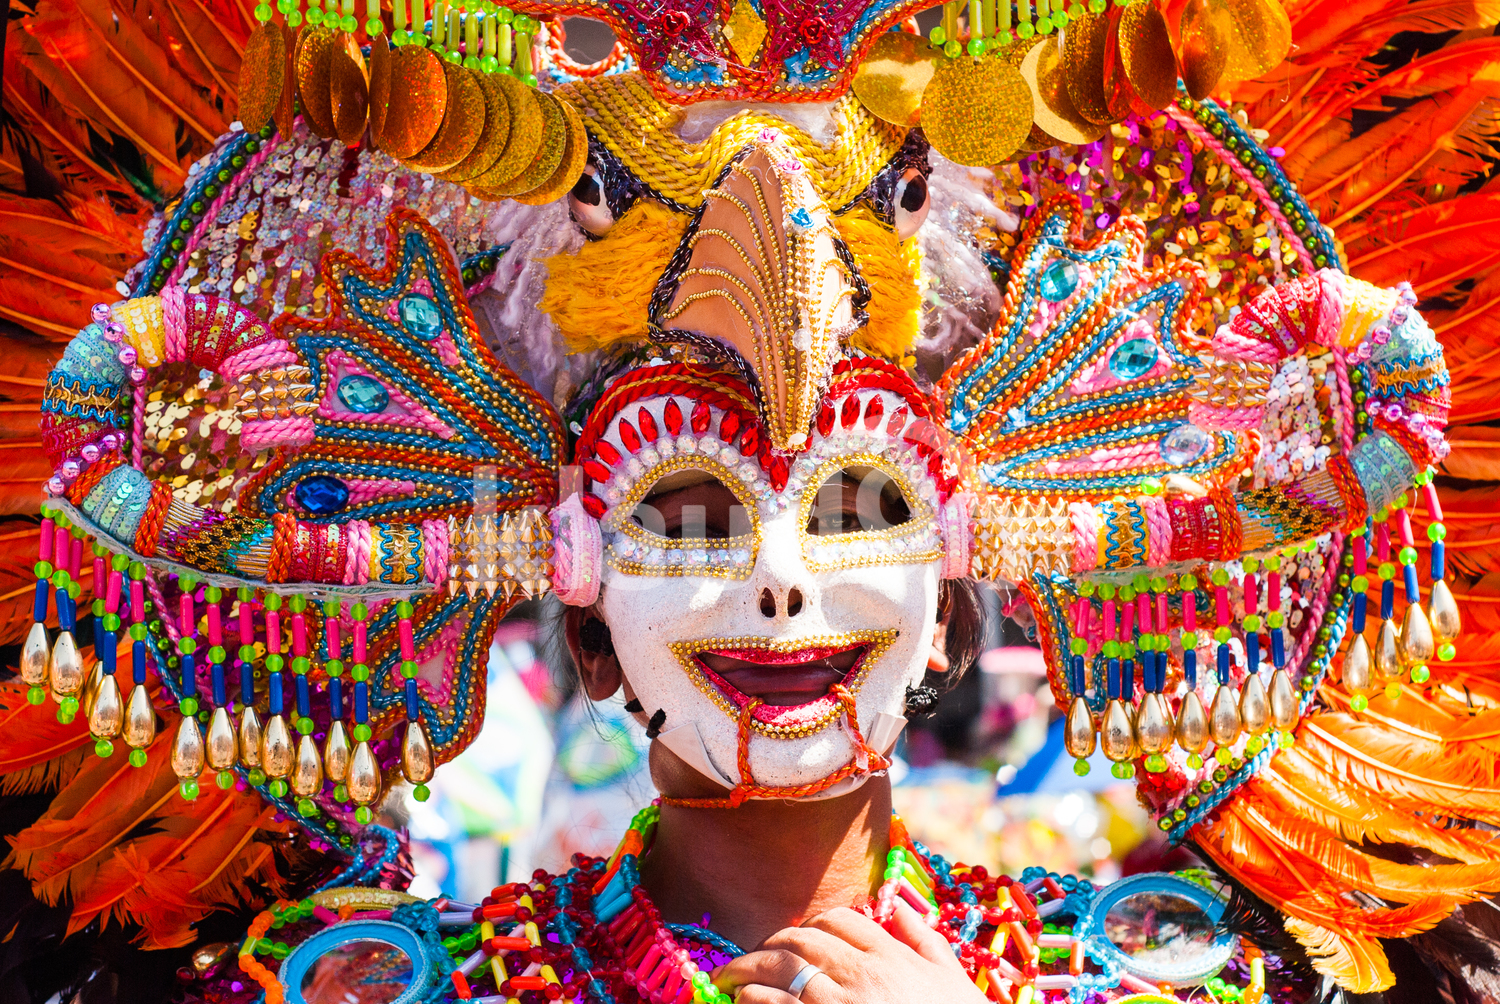 Colorful smiling mask at Masskara Festival, Bacolod City, Philippines